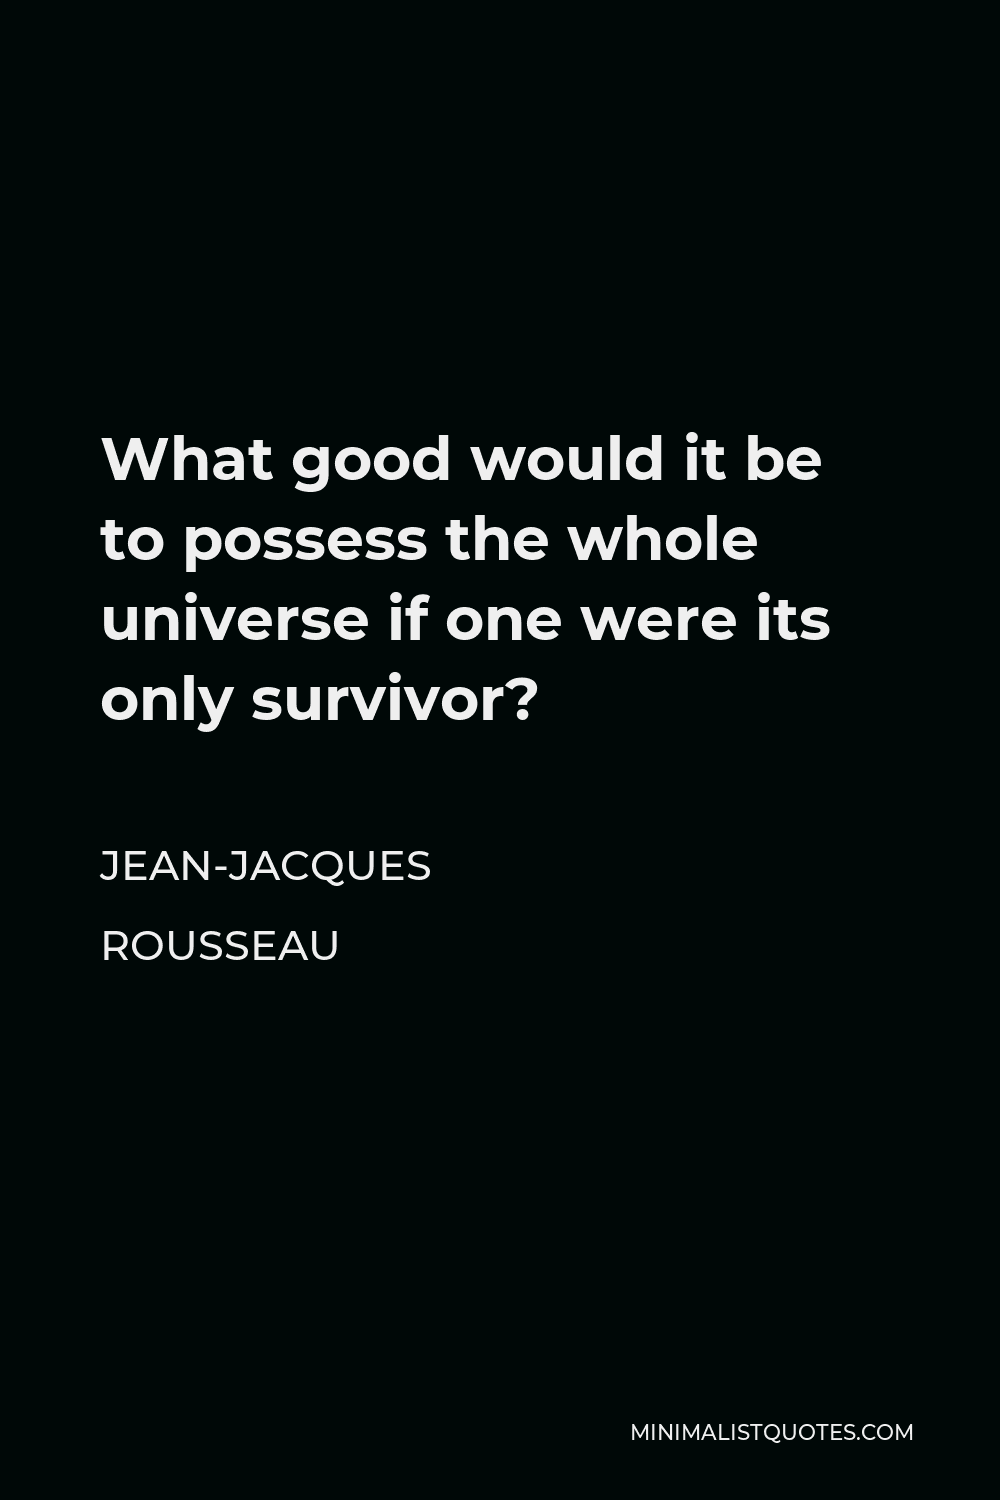 Jean-Jacques Rousseau Quote - What good would it be to possess the whole universe if one were its only survivor?